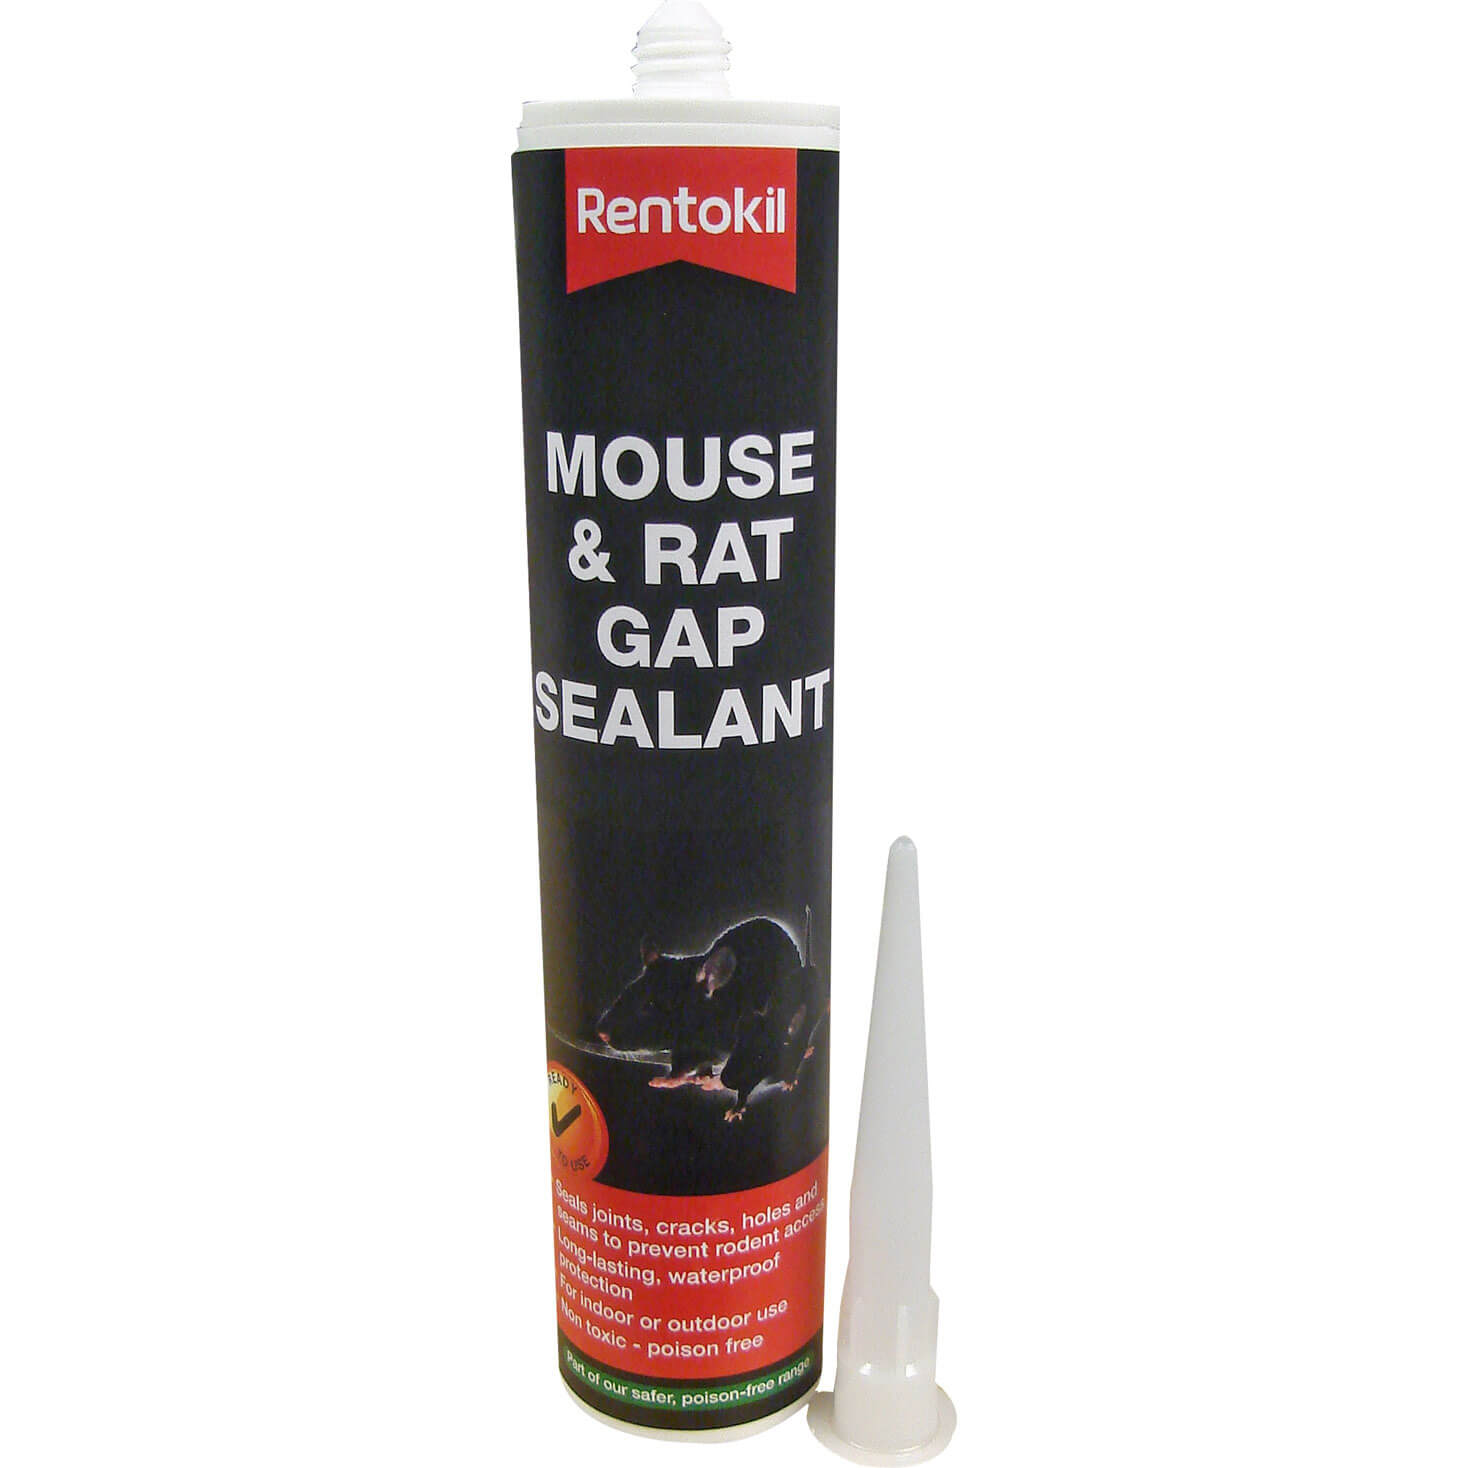 Image of Rentokil Mouse and Rat Gap Sealant